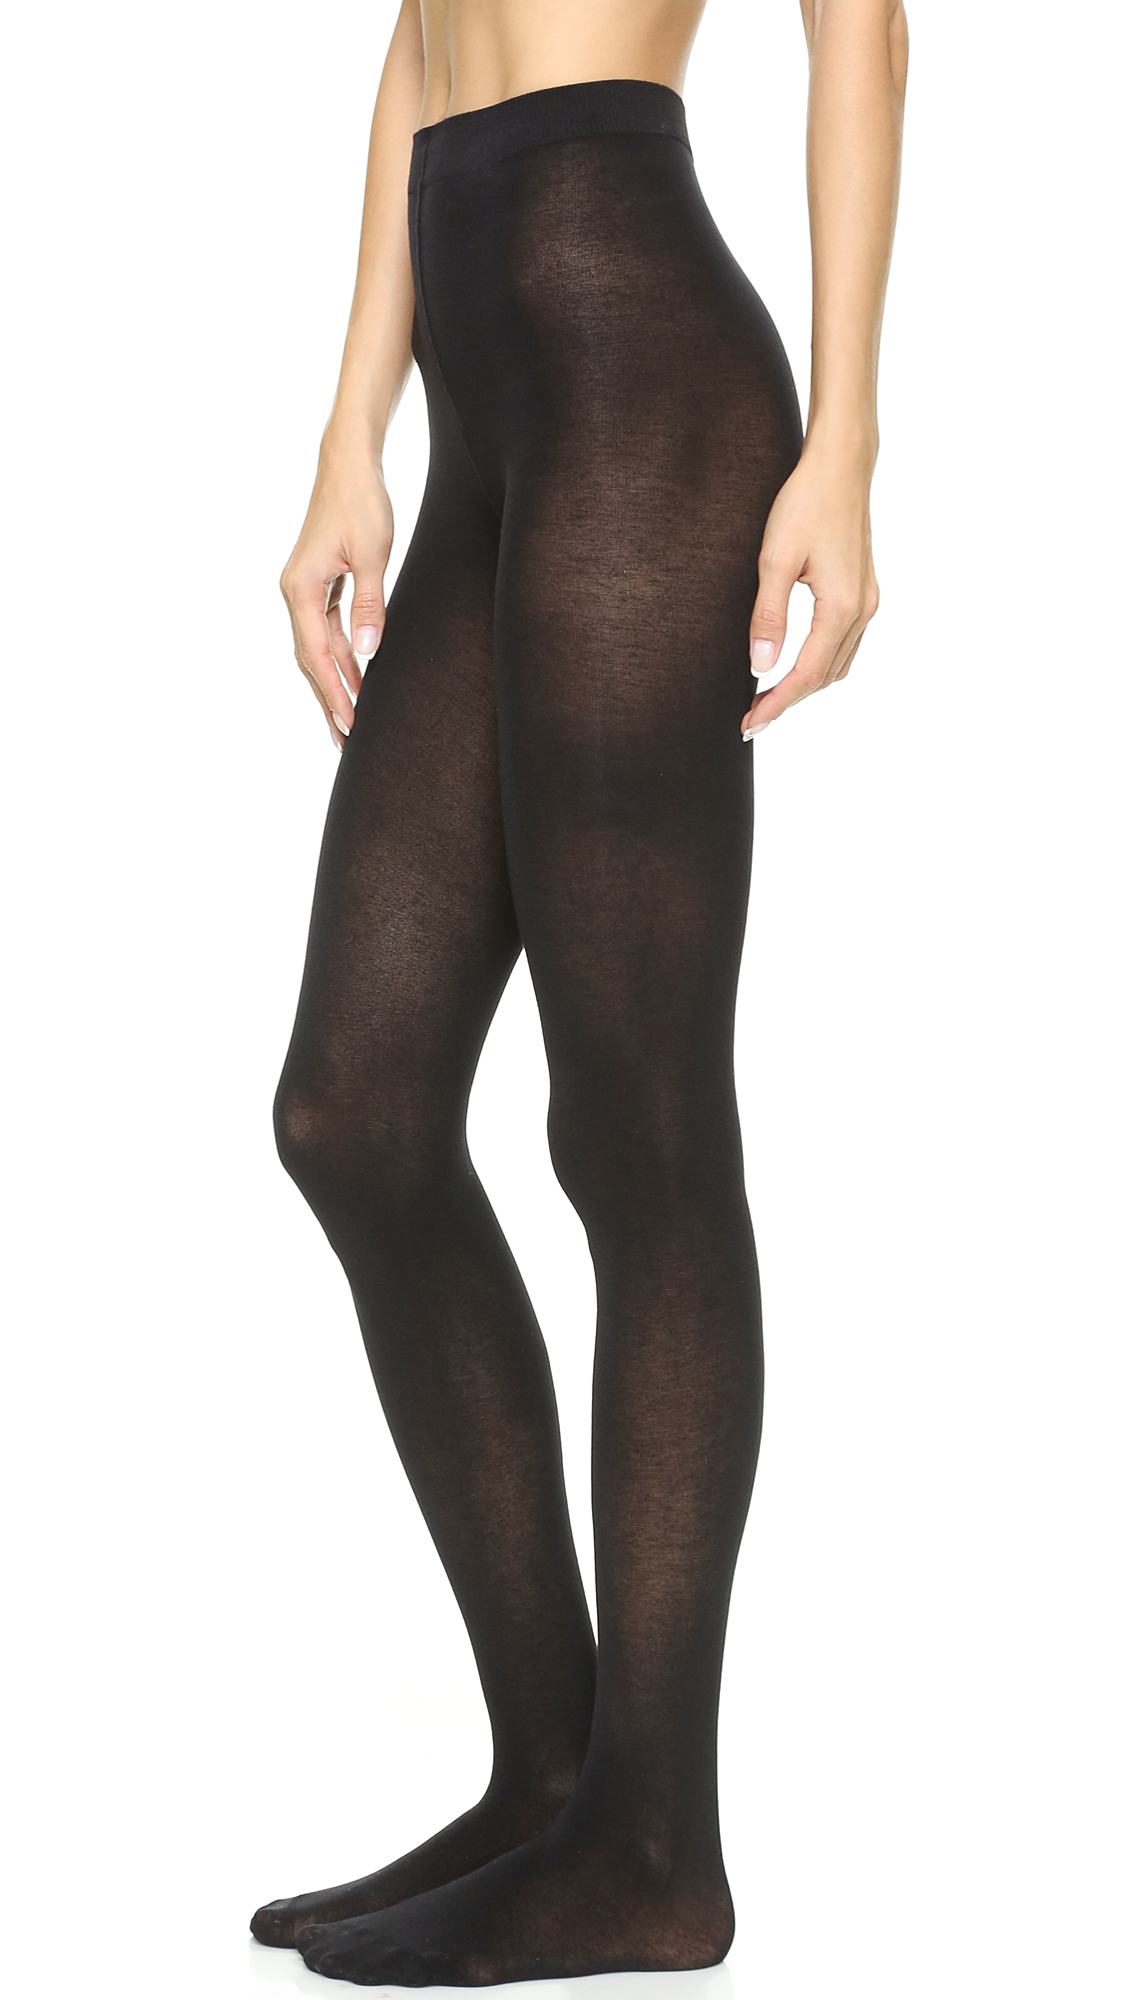 Alice   olivia alice   olivia by pretty polly super lovely basic tights